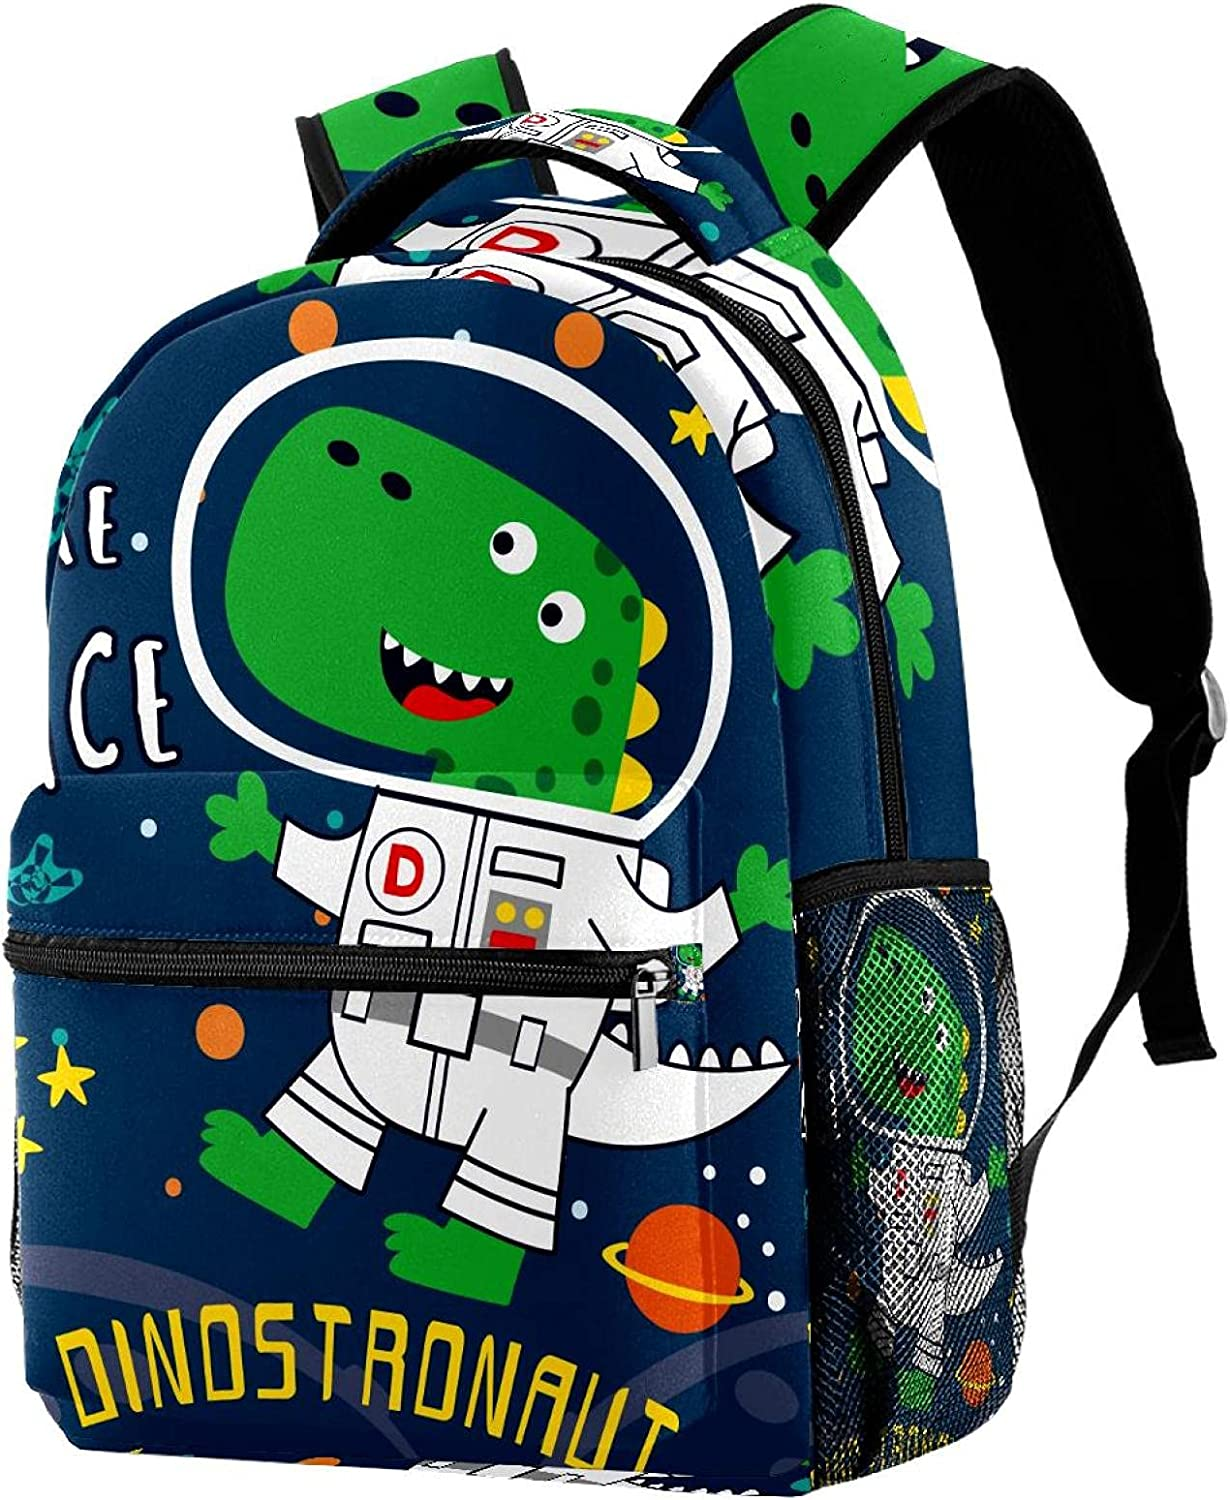 Backpack For Kids Super special price Space Challenge the lowest price of Japan ☆ School Trave Dinosaur Print